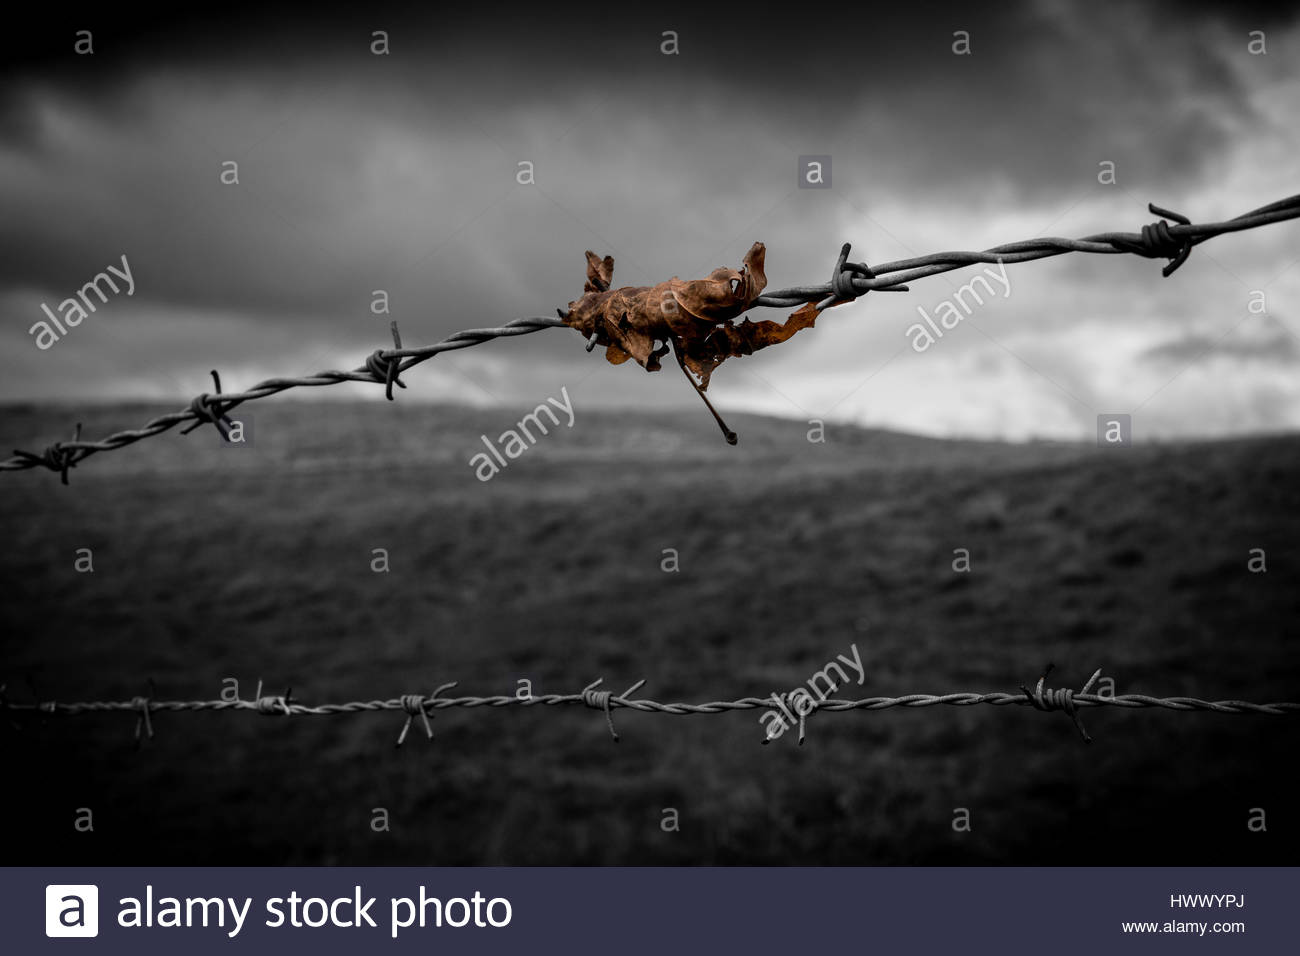 Barbed wire protection concept stock image. A brown leaf caught on barbed wire abstract concept. - Stock Image